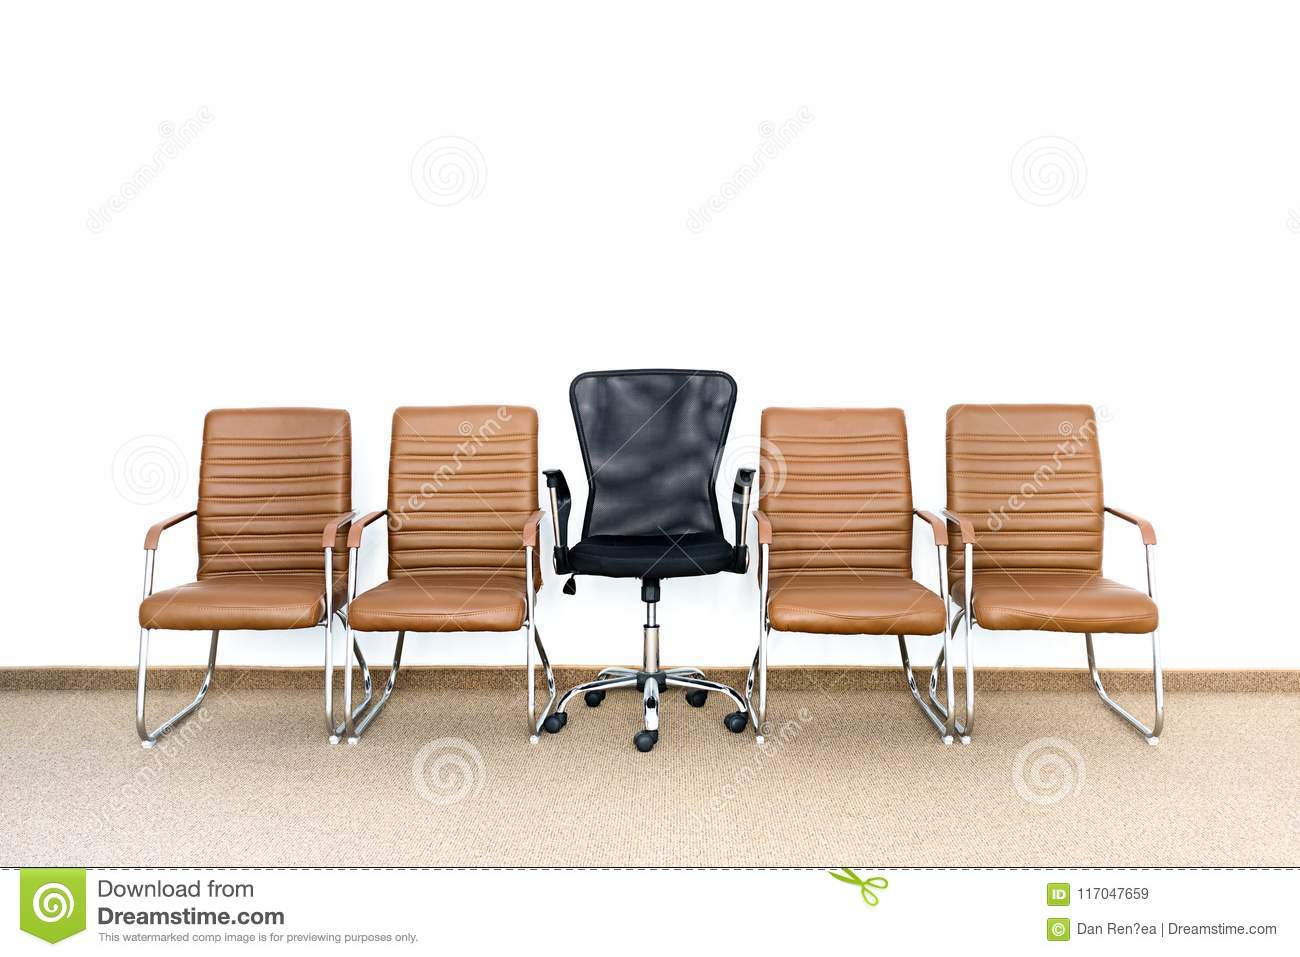 Download Row Of Chairs With One Different Chair In The Middle. Job  Opportunity. Stock